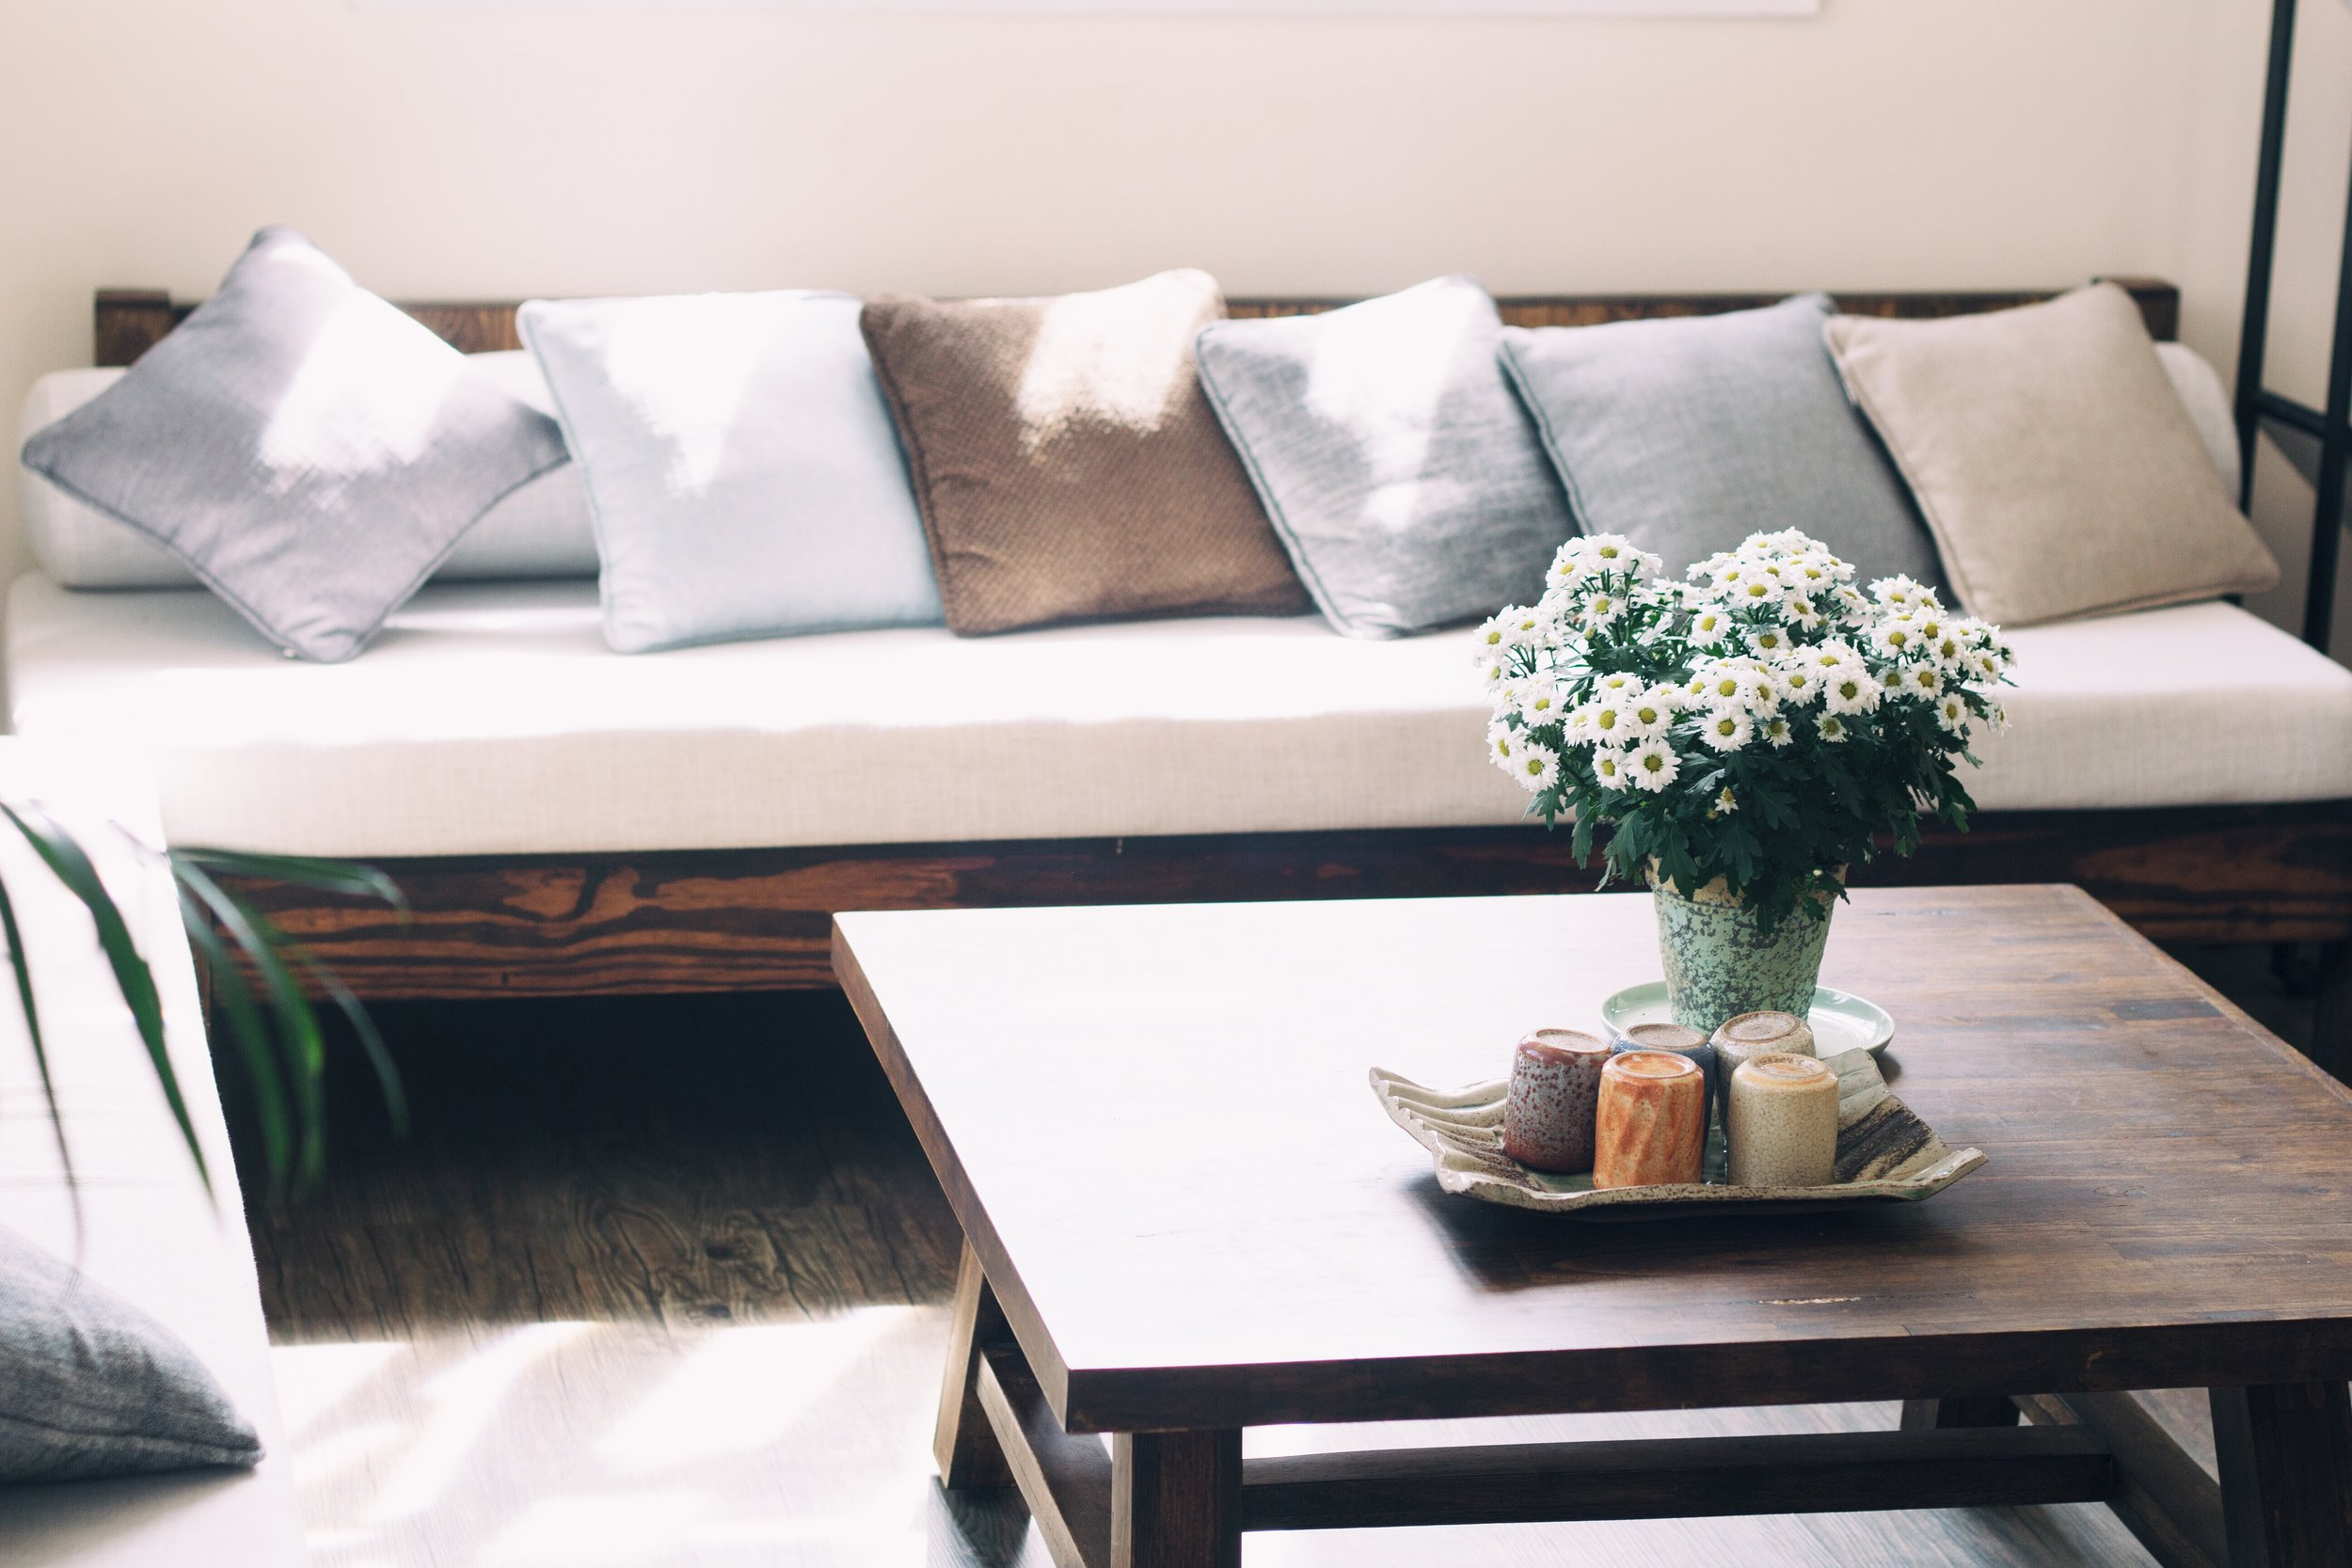 Combine natural fibers, wood and ceramic materials to bring softness and warmth to a living room.